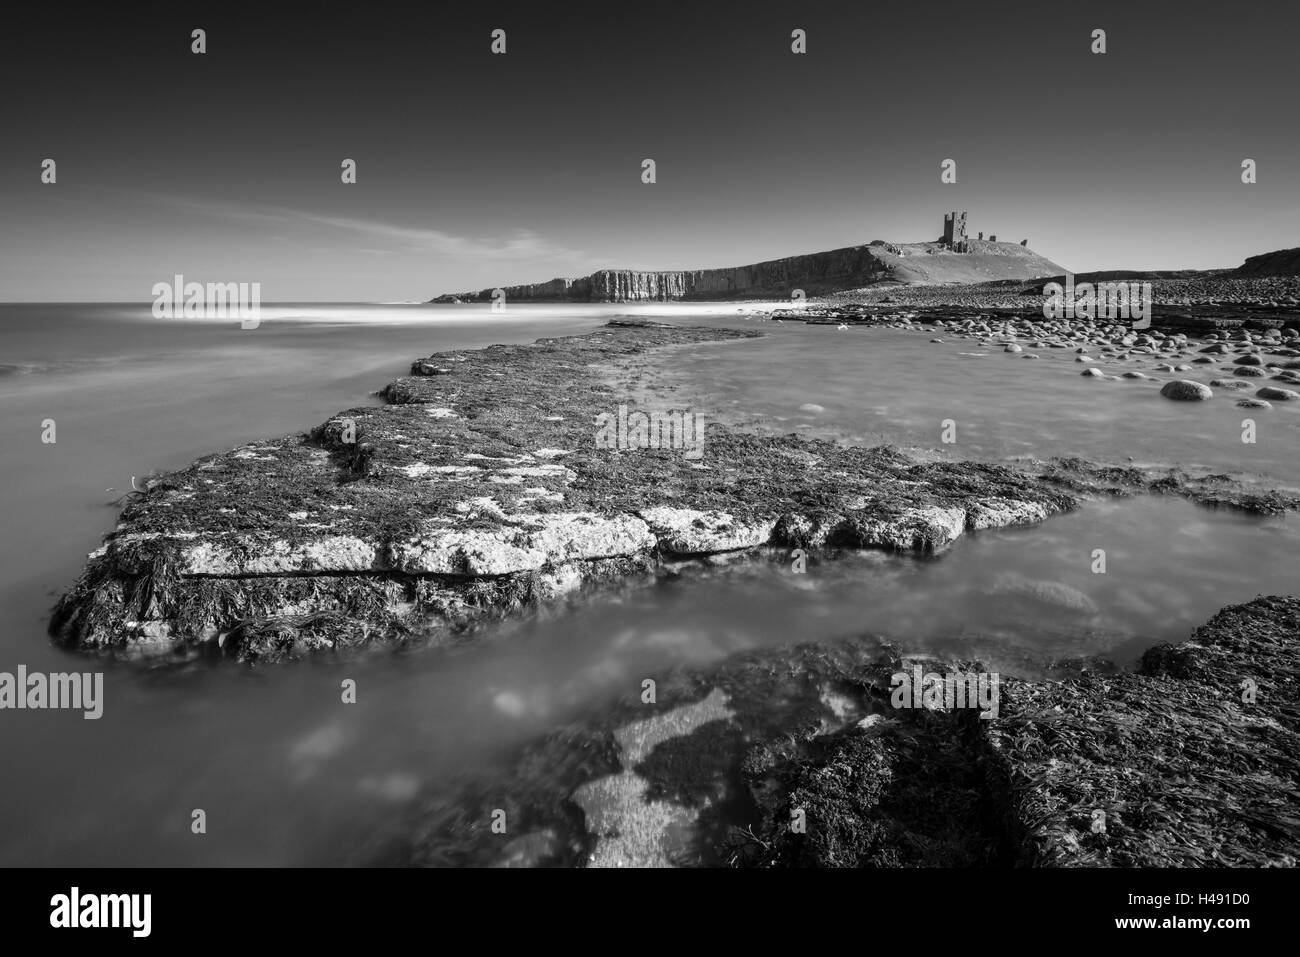 Dunstanburgh Castle from the rocky ledges of Embleton Bay, Northumberland, England. Spring (March) 2014. - Stock Image